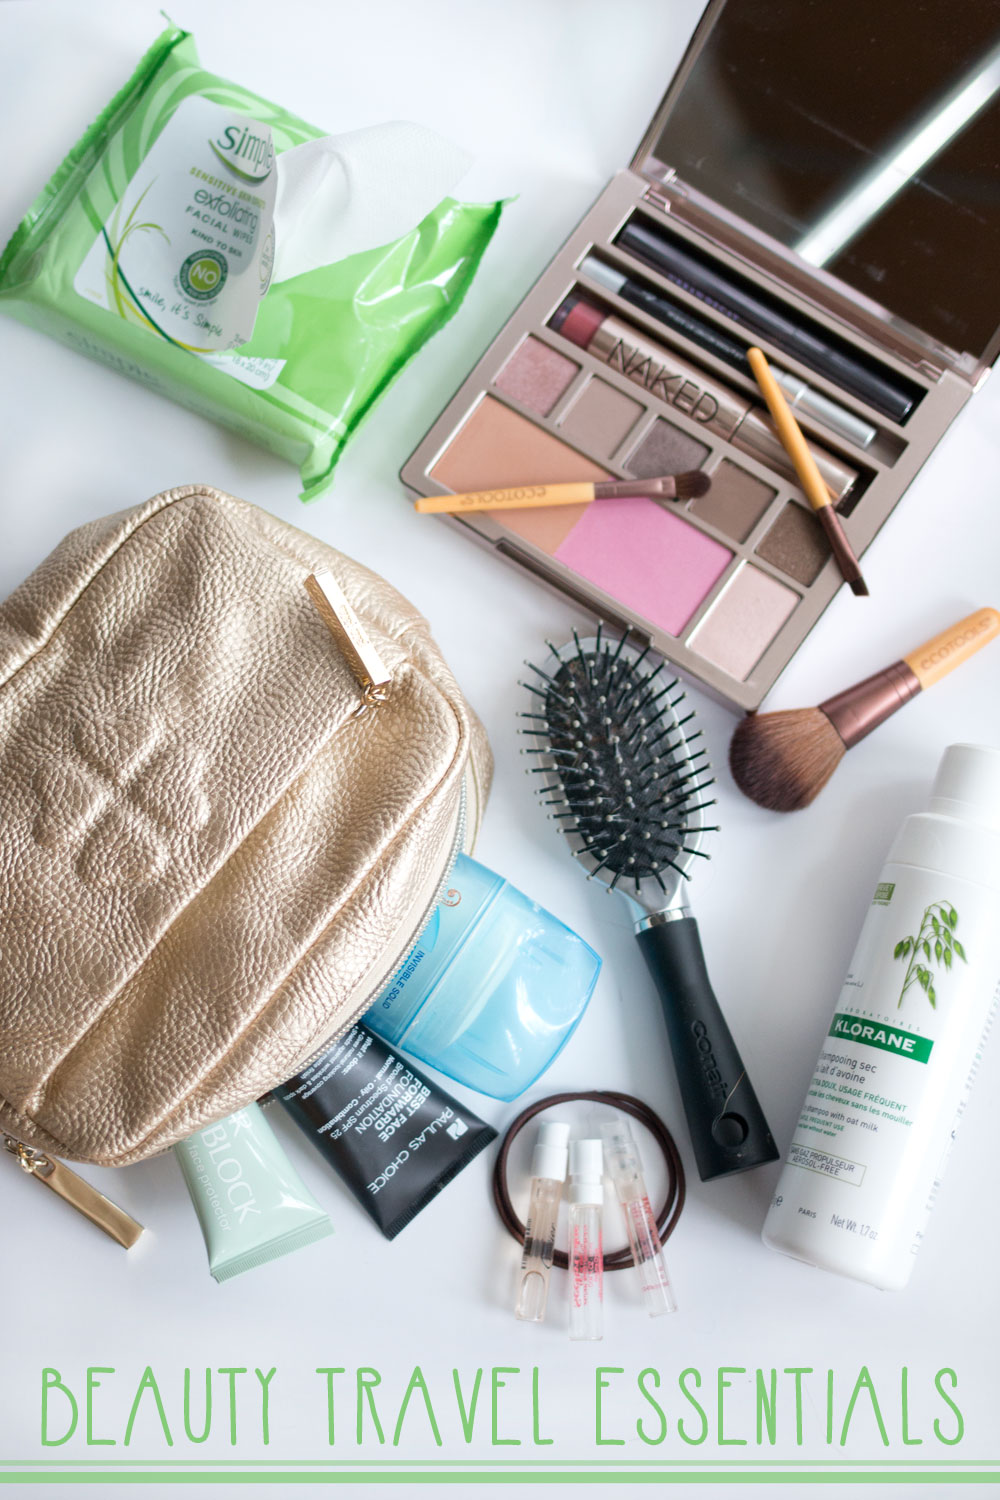 Makeup Essentials Must Haves From Makeup Artists Part 1: Hellorigby Seattle Beauty & Fashion